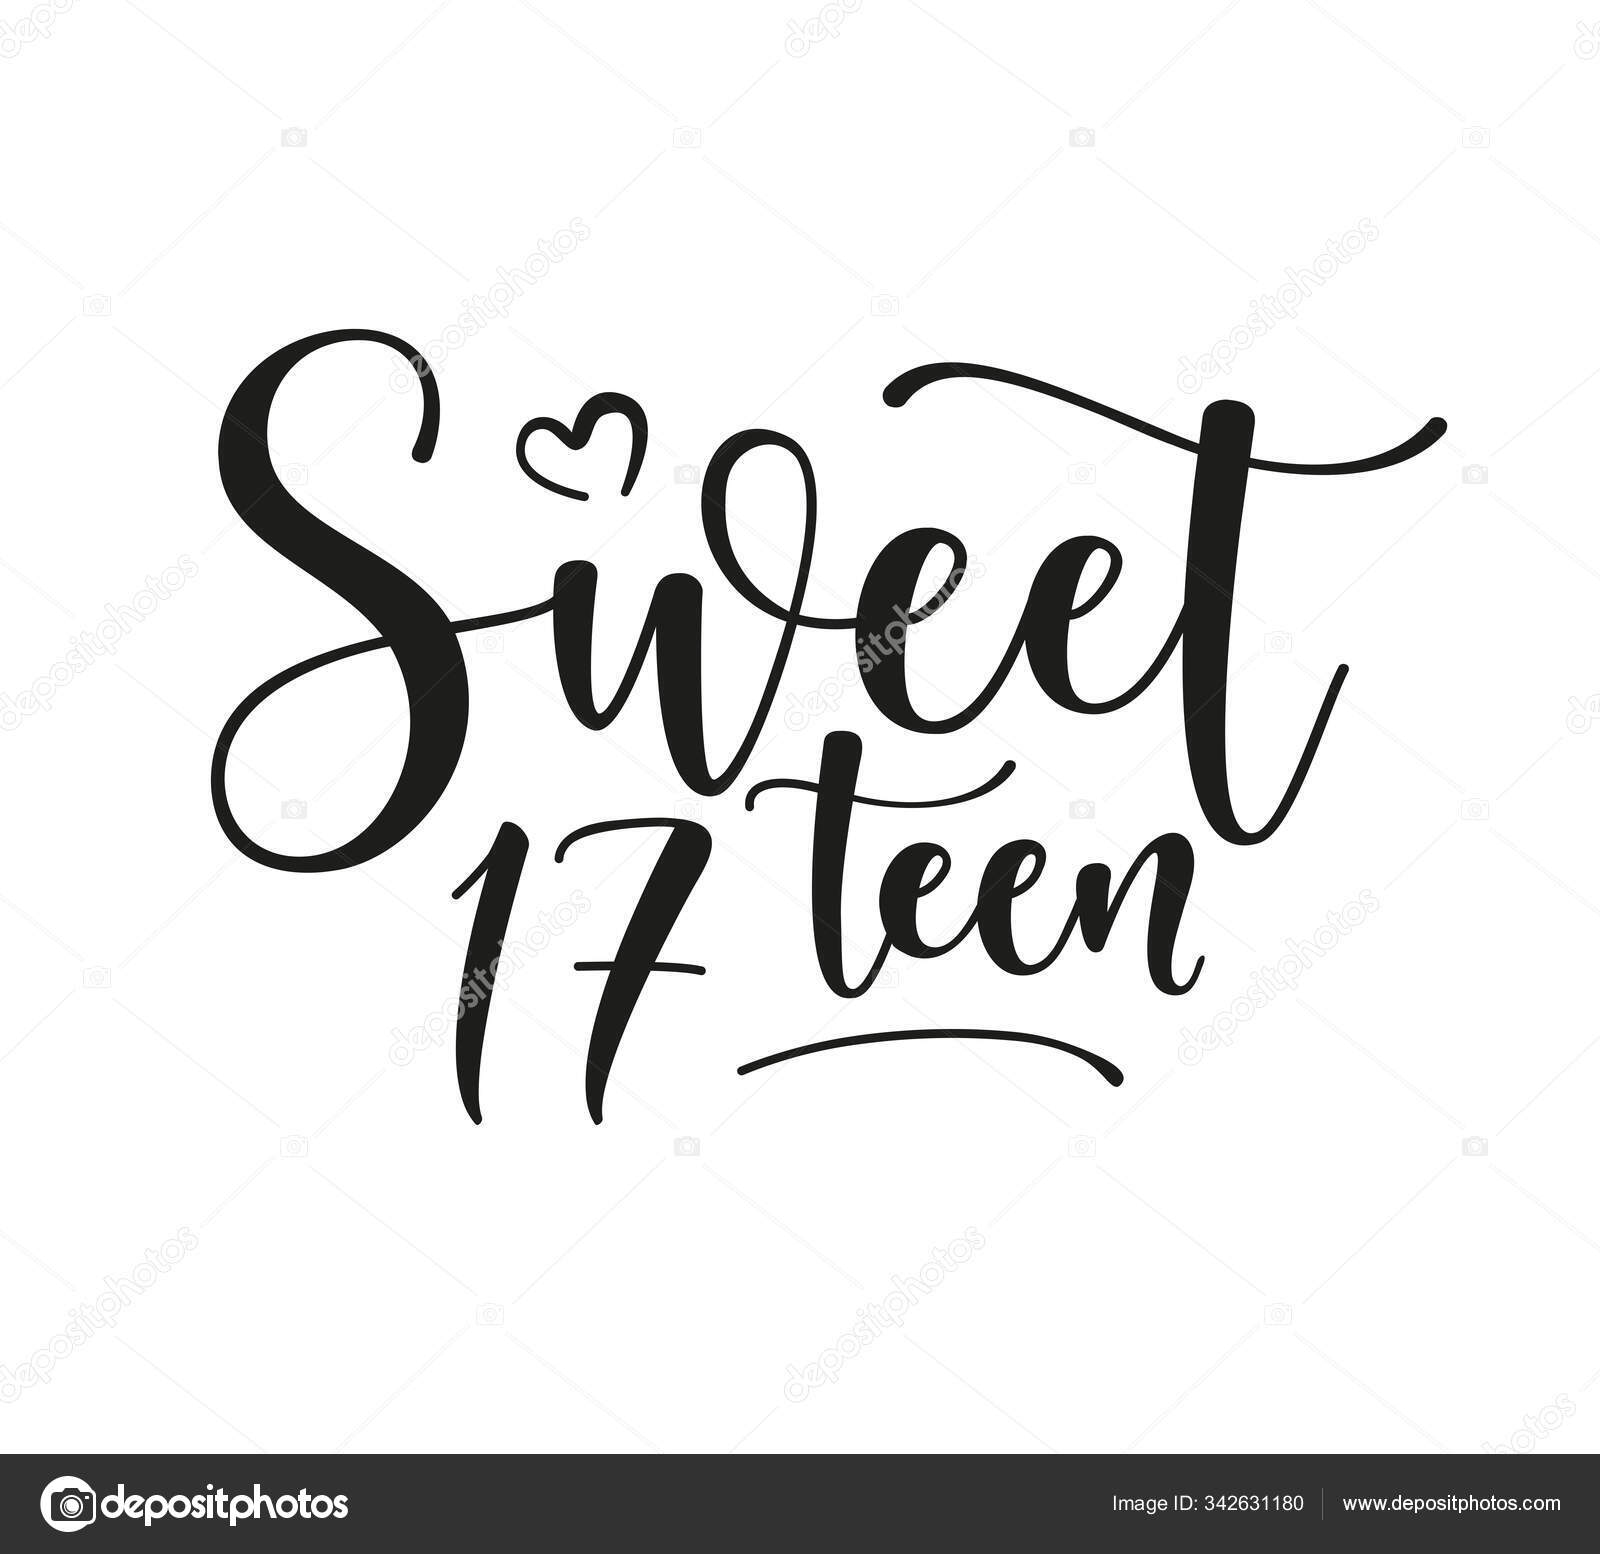 sweet 17teen happy birthday lettering sign design elements postcard poster stock vector c try ly la 342631180 https depositphotos com 342631180 stock illustration sweet 17teen happy birthday lettering html